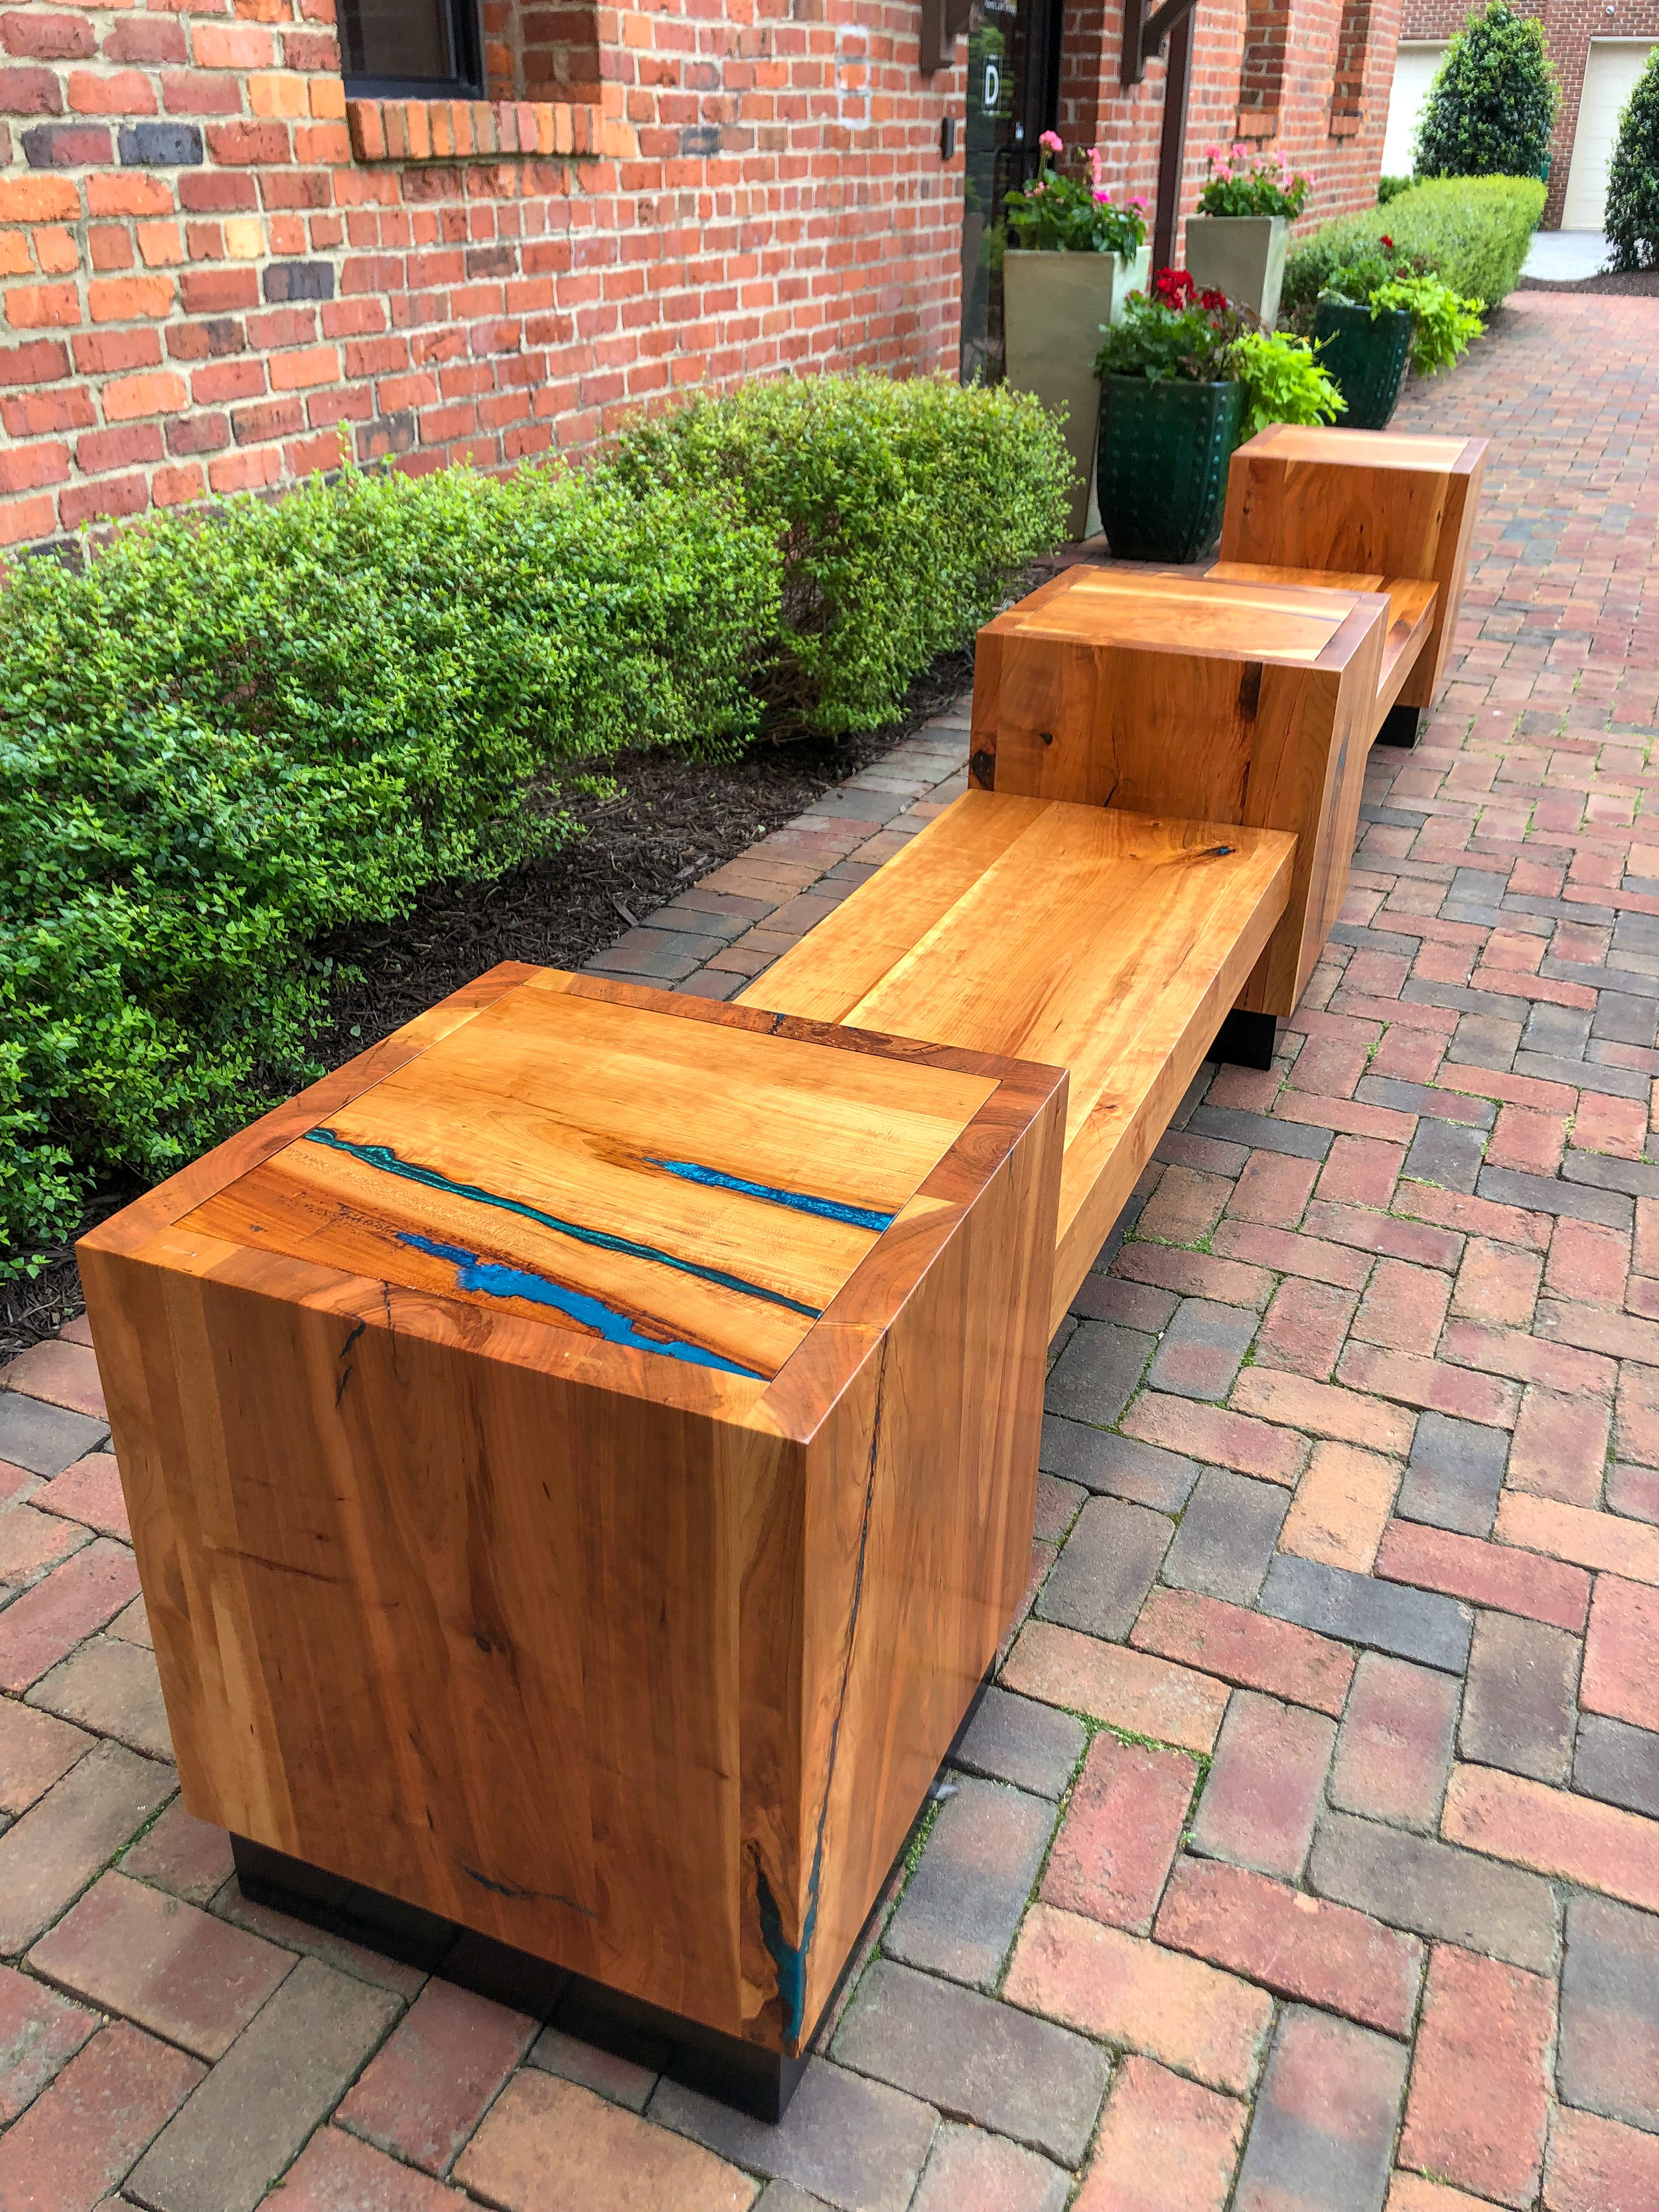 Rocket's Landing Cherry Benches and Tables. Sallie Plumley Studio. Richmond Virginia. One Woman Owned Business. Sally Plumlee